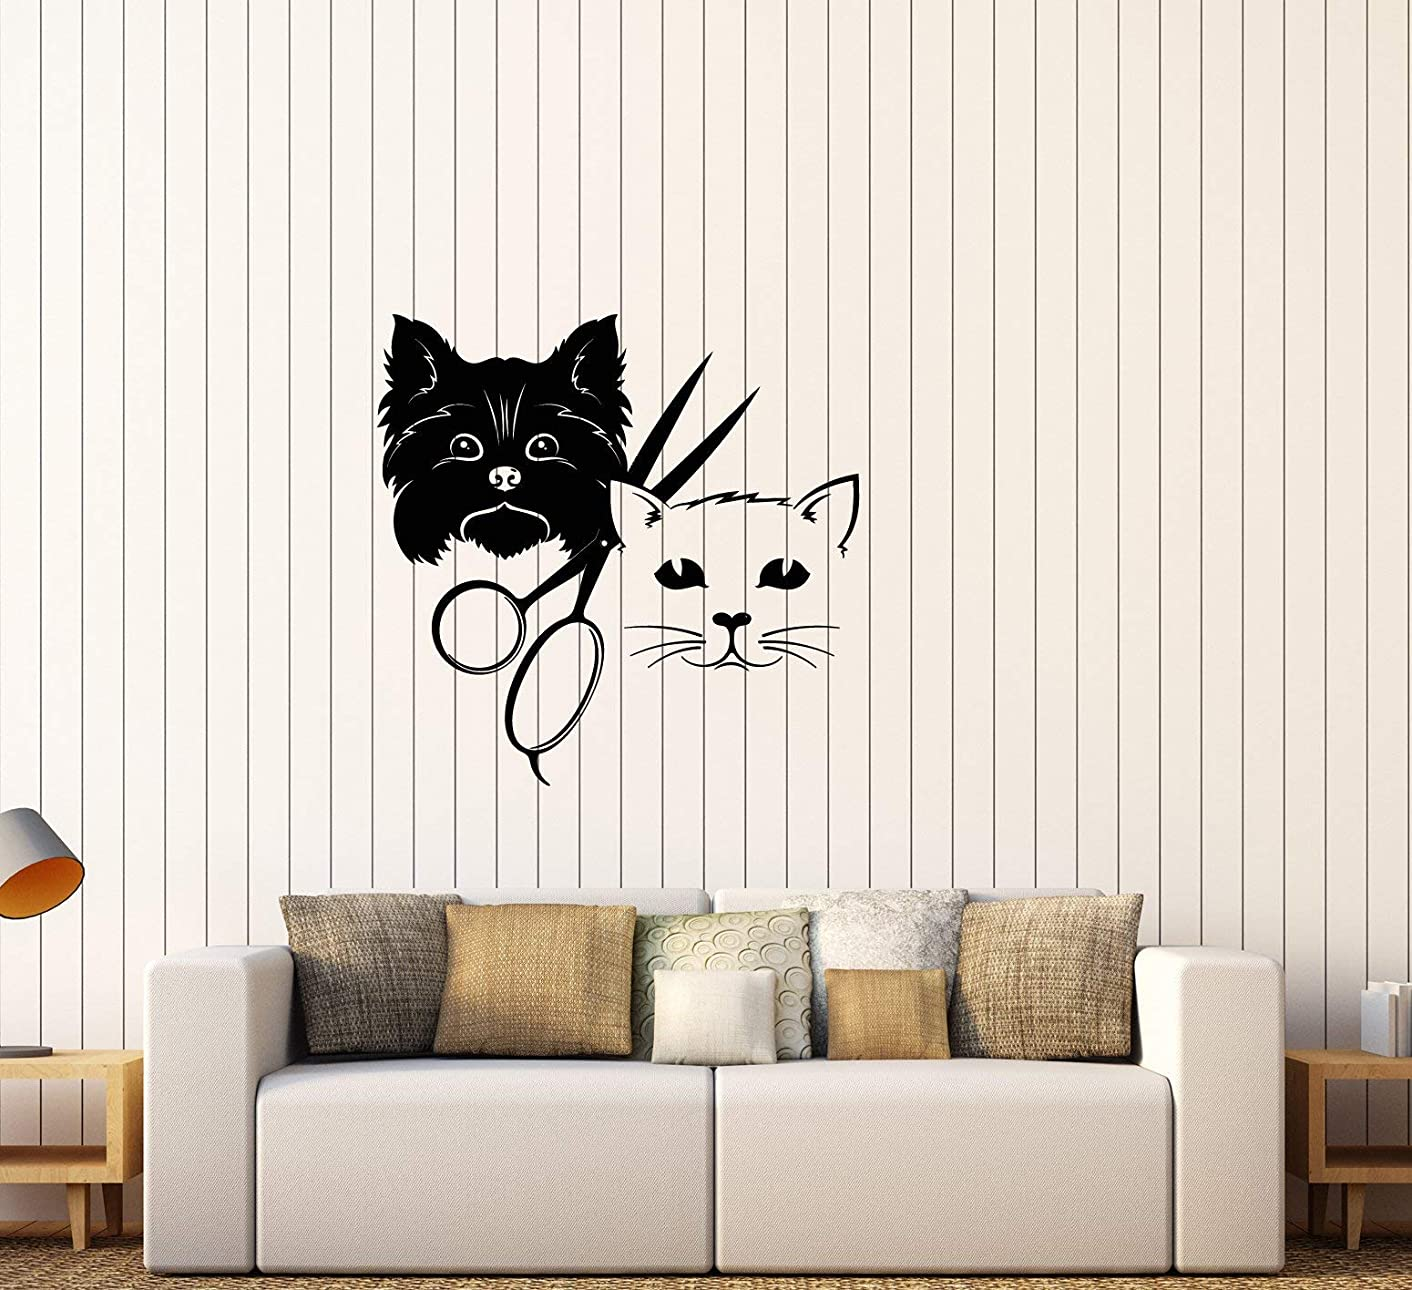 Vinyl Wall Decal Grooming Beauty Salon Dog and Cat Scissors Logo Stickers (3743ig)